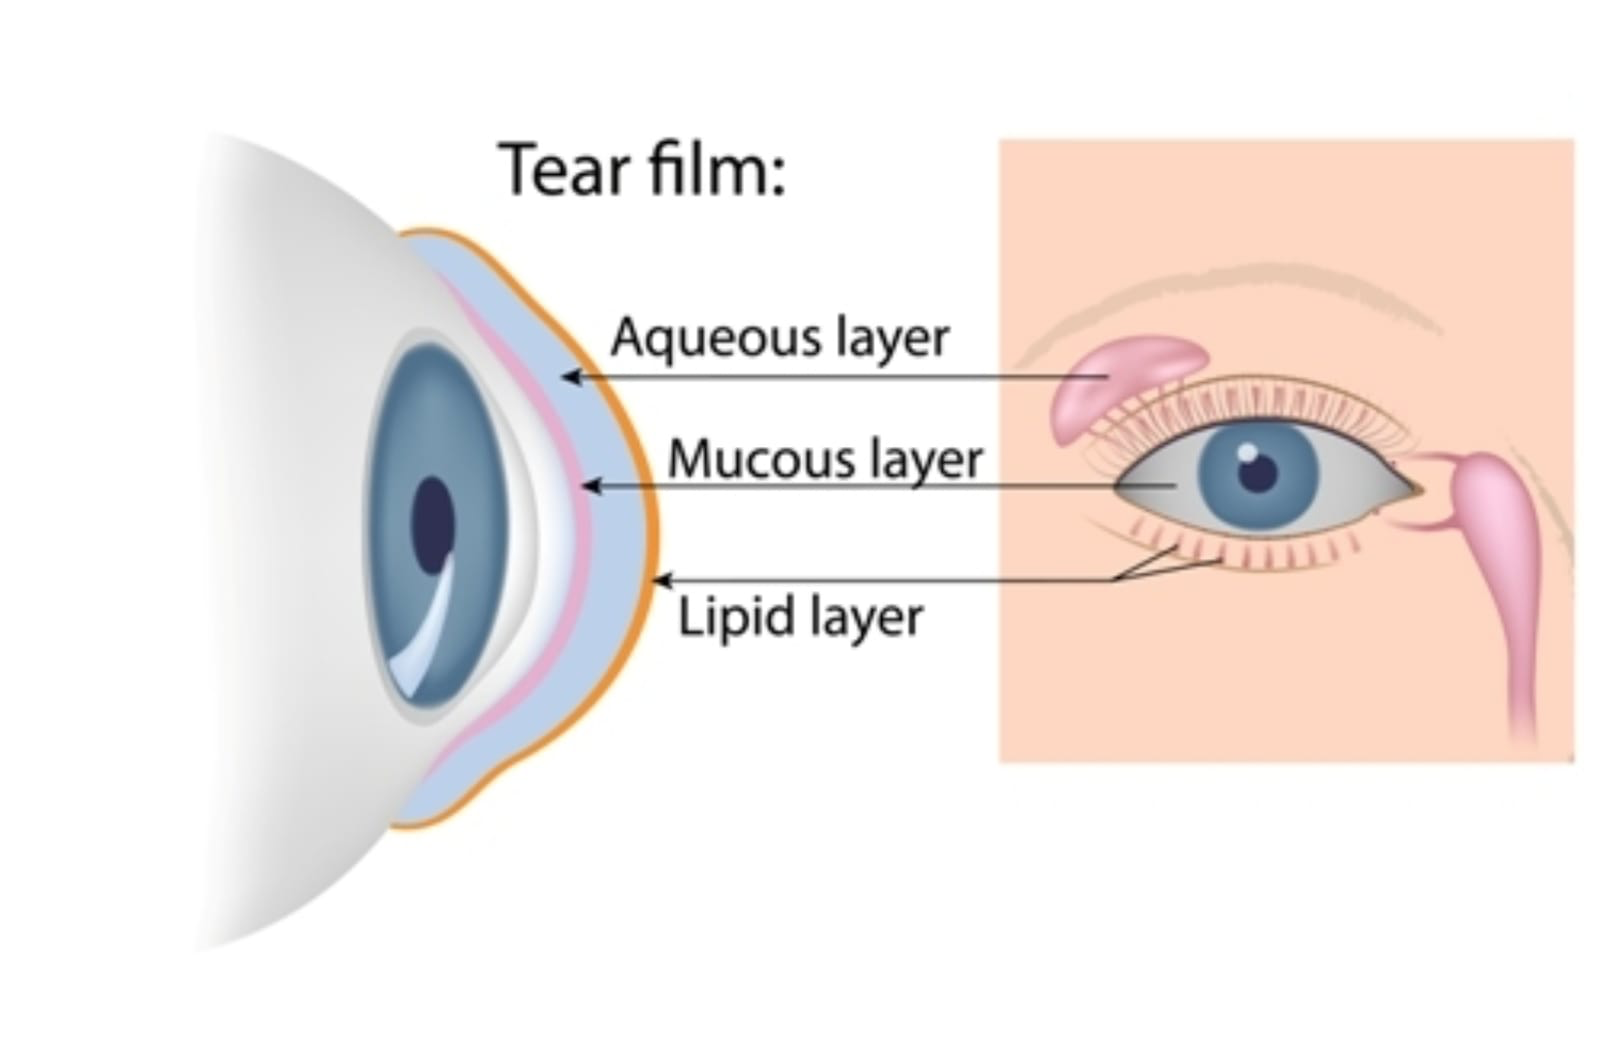 Diagram showing the aqueous, mucous, and lipid layers of tear and which part of the eye produces them